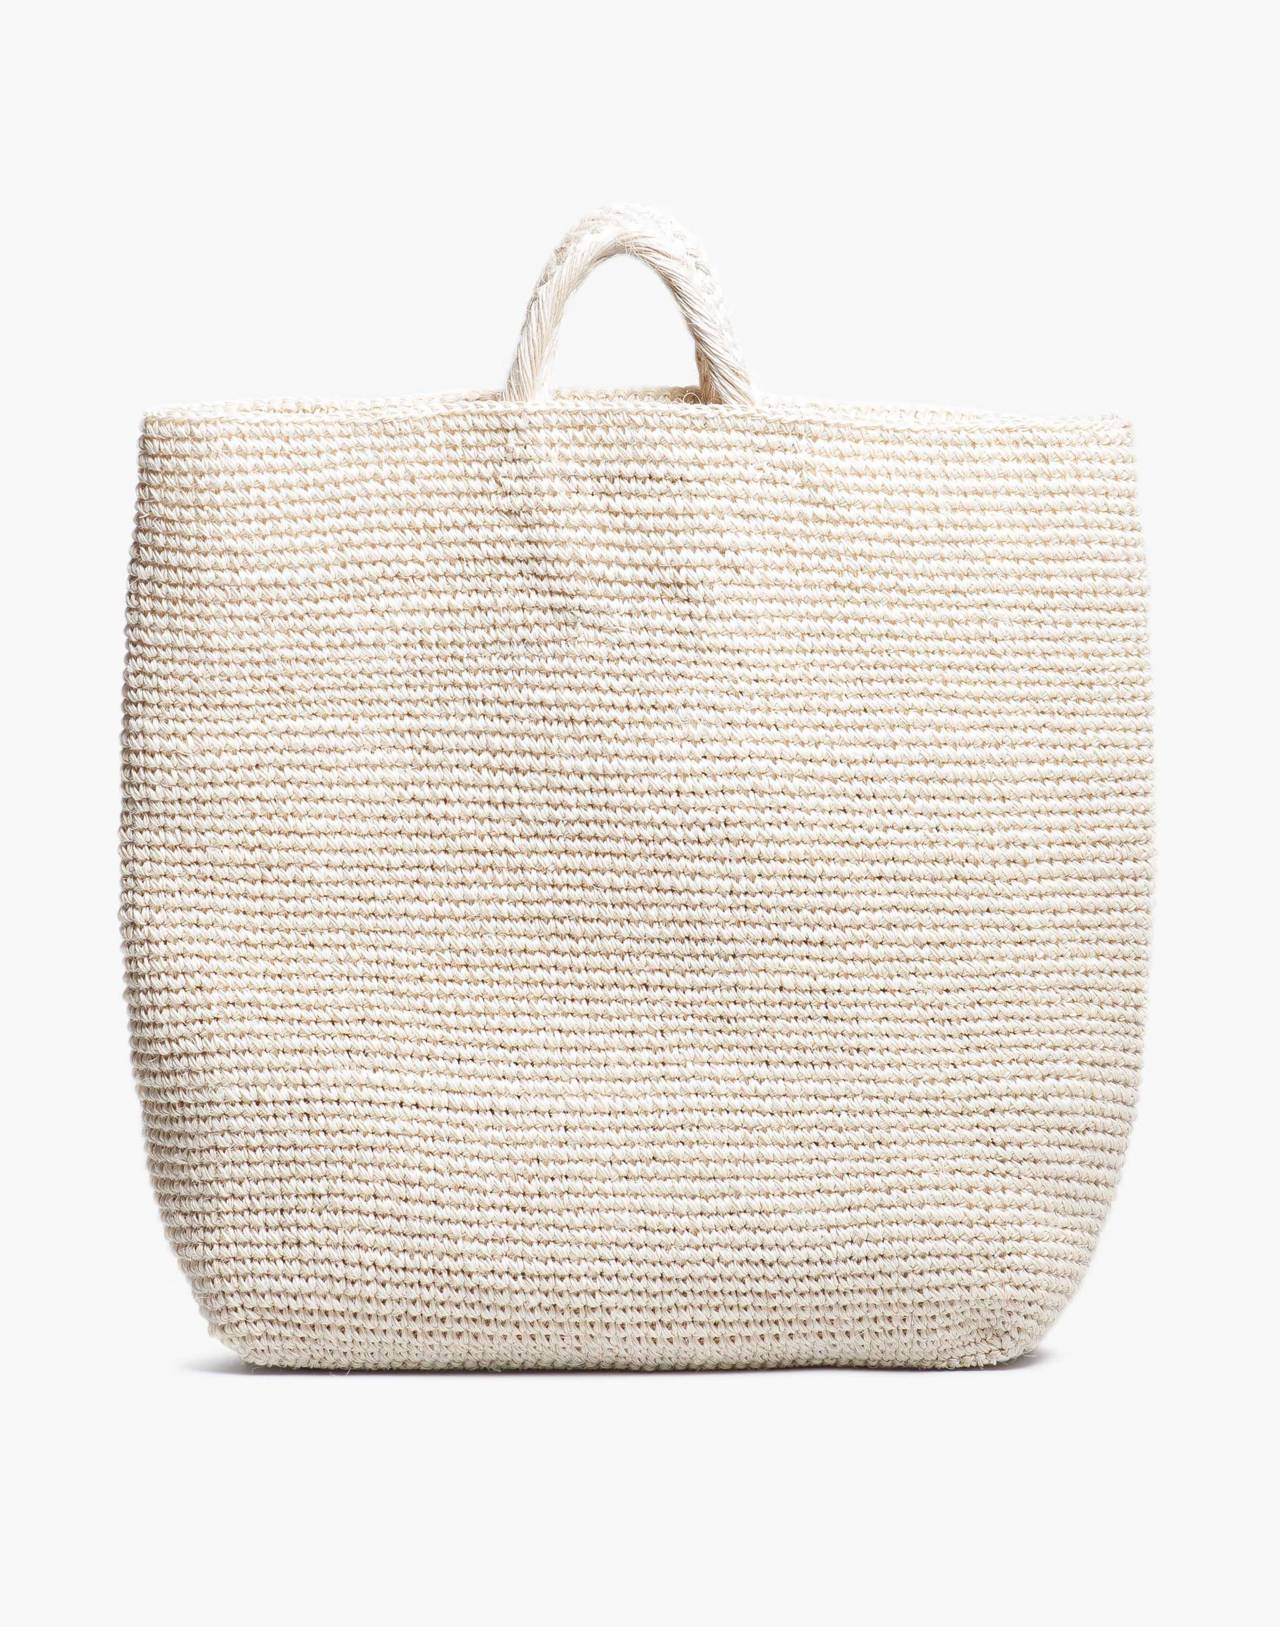 SOMEWARE™ Palma Crocheted Market Bag in nude image 2